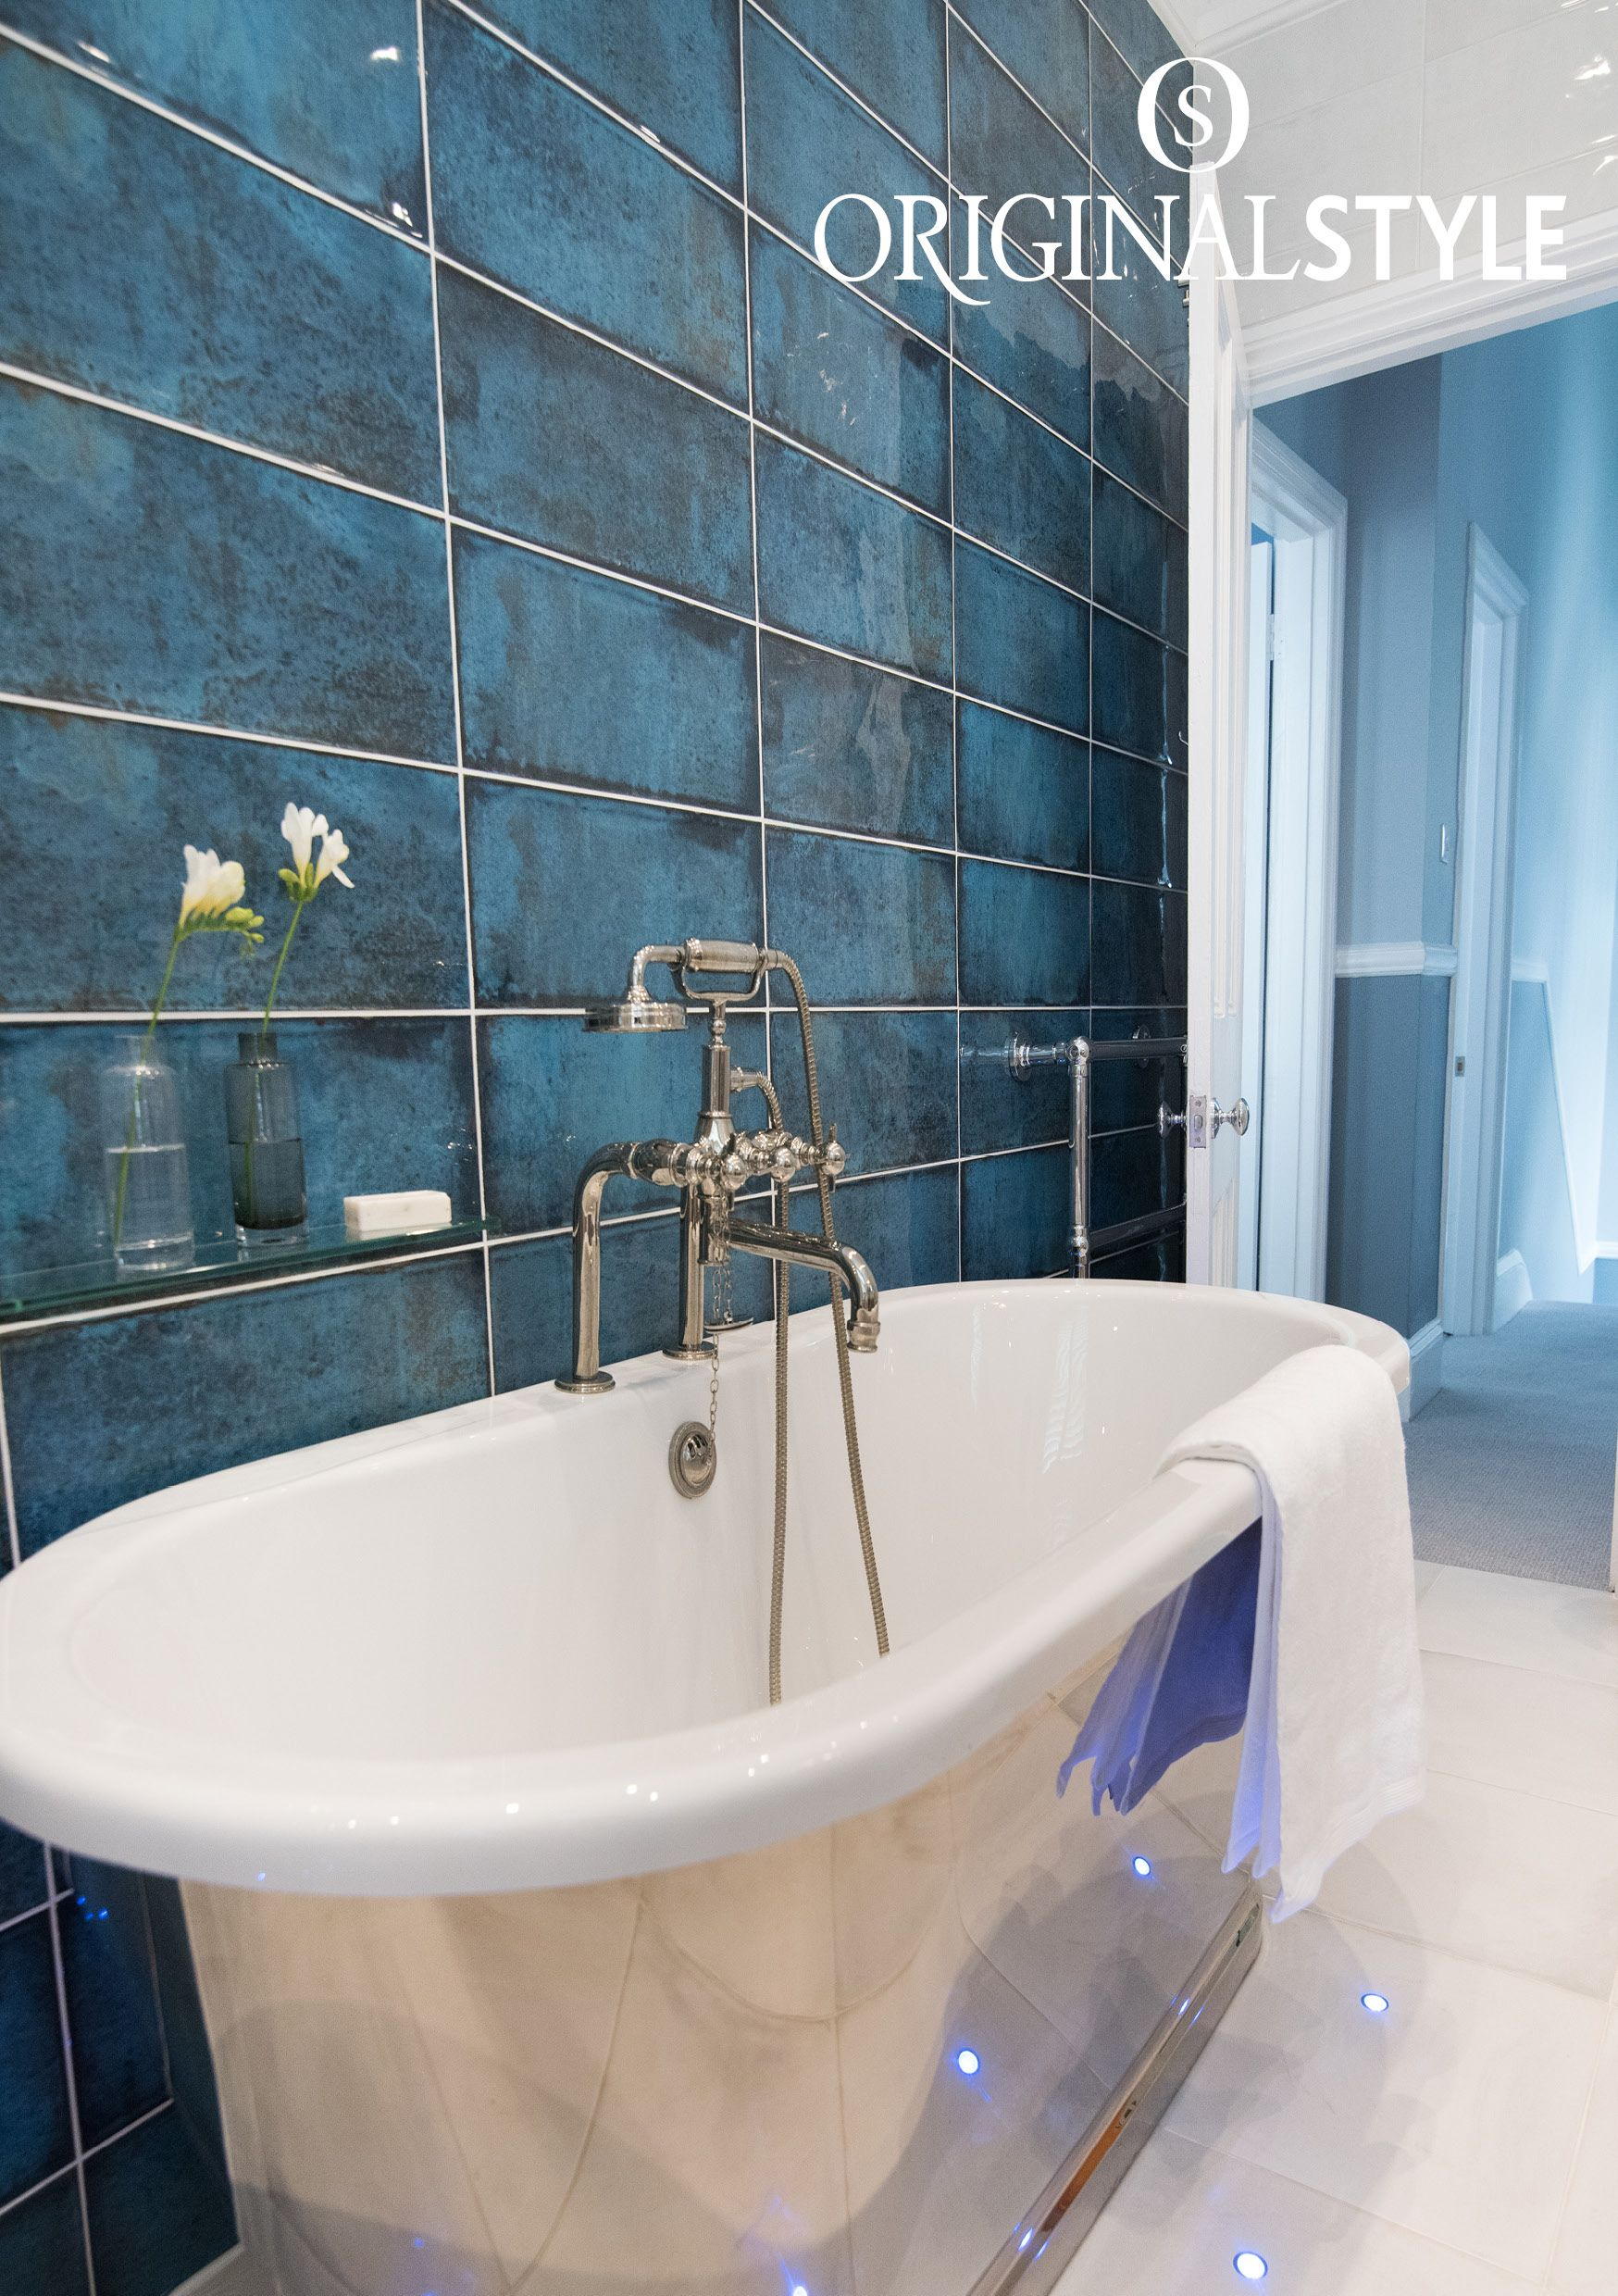 Montblanc Blue Ceramic Tile | Dream Home | Pinterest | Walls ...